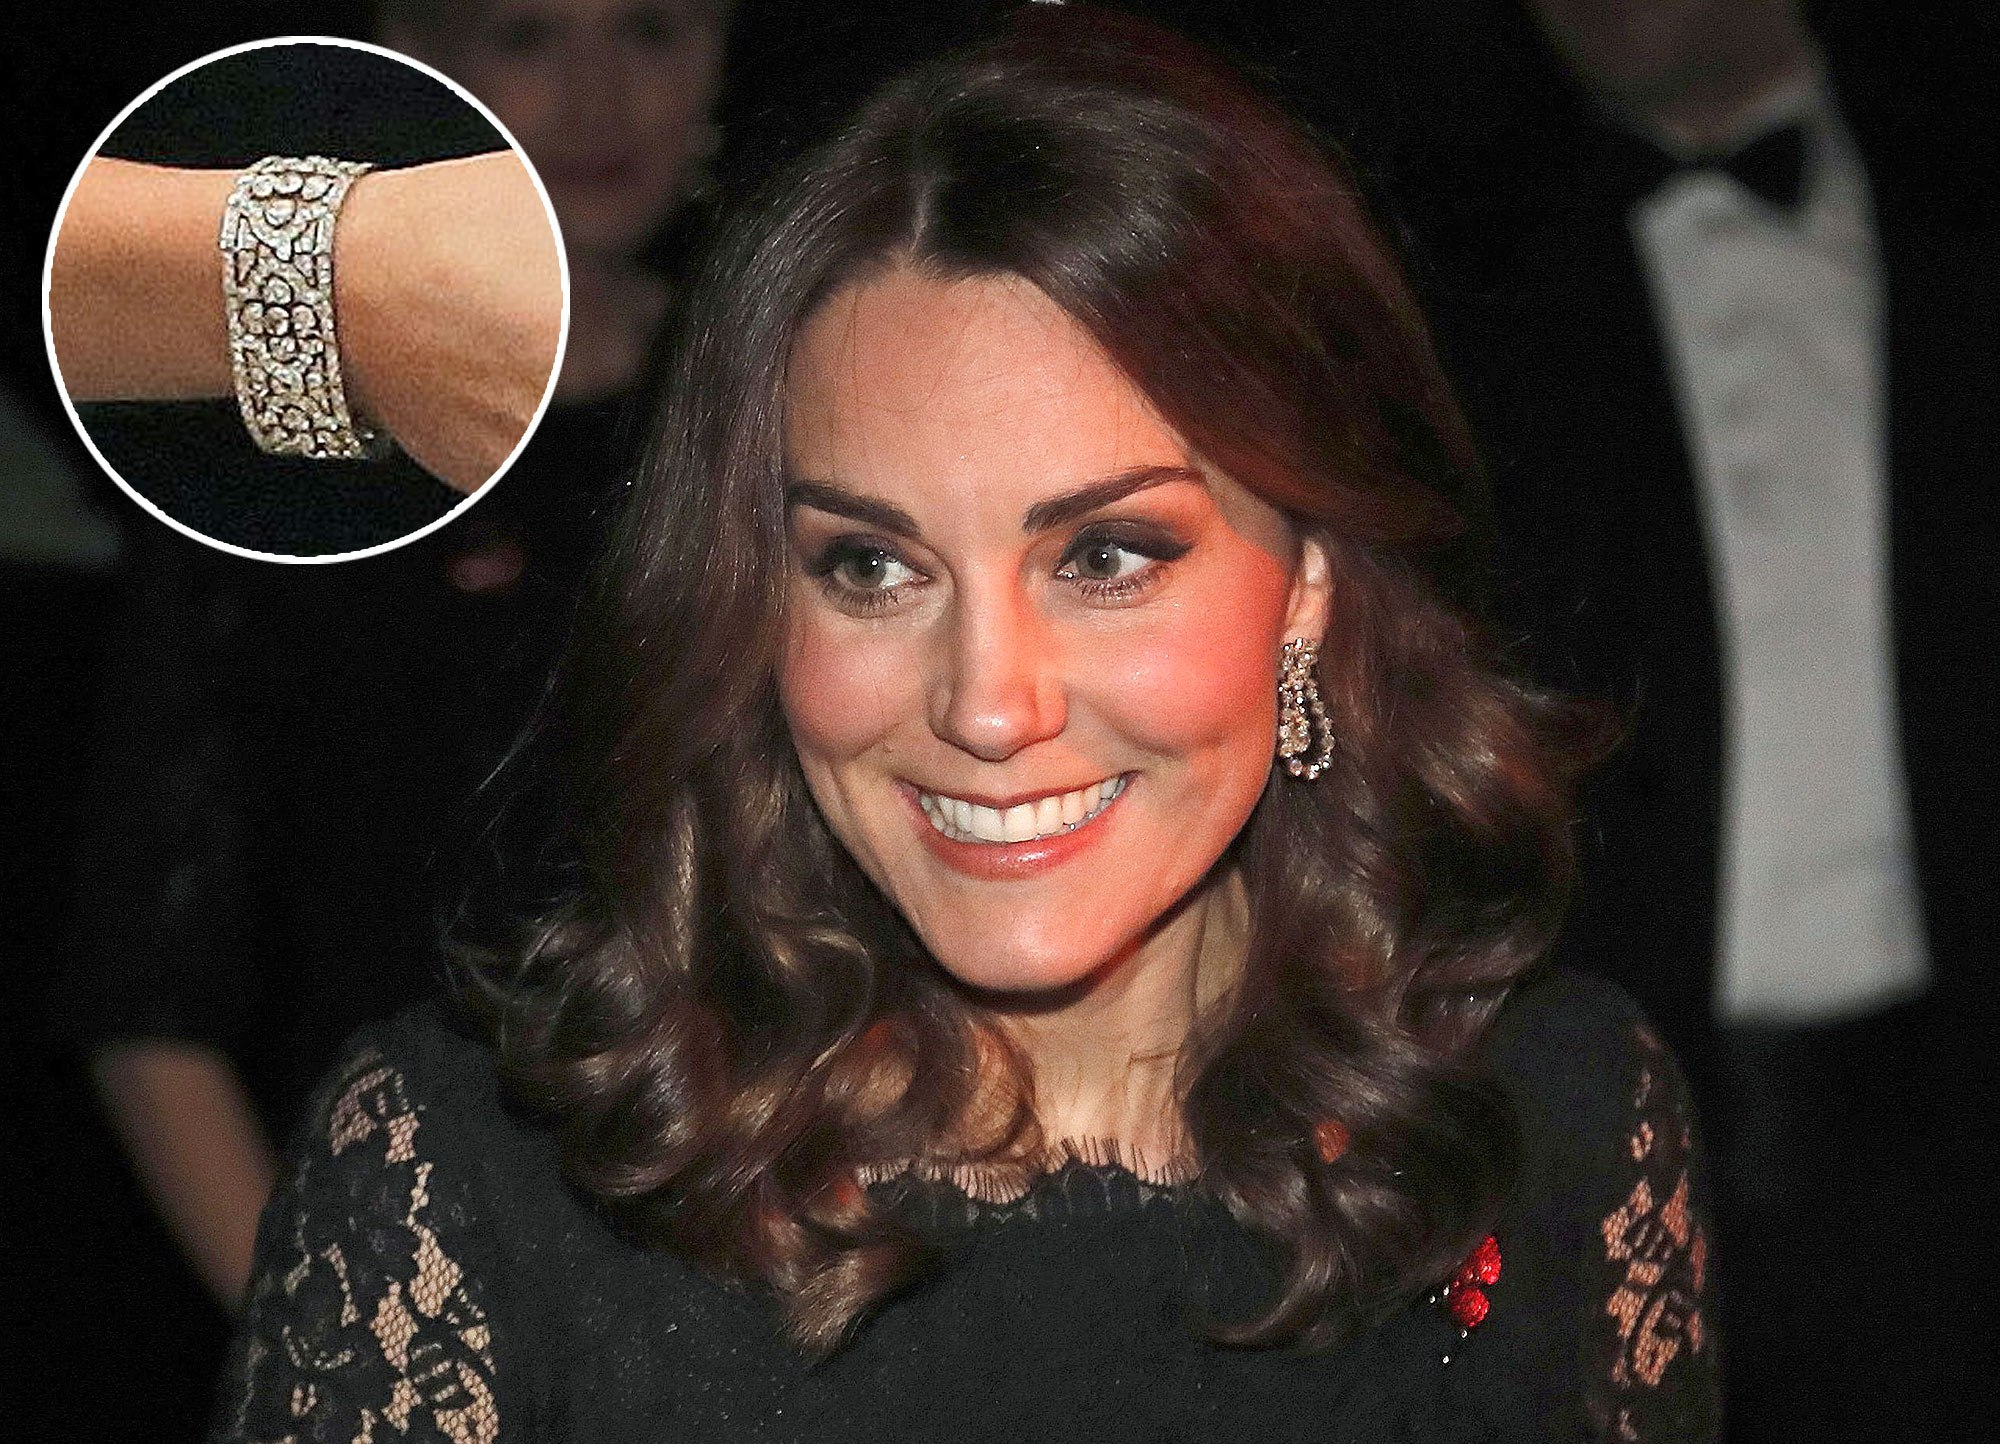 Britain's Catherine, Duchess of Cambridge smiles as she arrives to attend the 2017 Gala Dinner for The Anna Freud National Centre for Children and Families (AFNCCF), at Kensington Palace in London on November 7, 2017. During the Gala, The Duchess will attend a reception to hear more about this project and the work of the AFNCCF from those who are closely involved in the Charity. She will also meet with some of the charitys service users, including families who have benefitted from the work of the organisation. / AFP PHOTO / POOL / Frank Augstein (Photo credit should read FRANK AUGSTEIN/AFP/Getty Images) Britain's Catherine, Duchess of Cambridge speaks to Peter Fonagy, CEO of the Anna Freud Center at the 2017 Gala Dinner for The Anna Freud National Centre for Children and Families (AFNCCF), at Kensington Palace in London on November 7, 2017. During the Gala, The Duchess will attend a reception to hear more about this project and the work of the AFNCCF from those who are closely involved in the Charity. She will also meet with some of the charitys service users, including families who have benefitted from the work of the organisation. / AFP PHOTO / POOL / Frank Augstein (Photo credit should read FRANK AUGSTEIN/AFP/Getty Images)